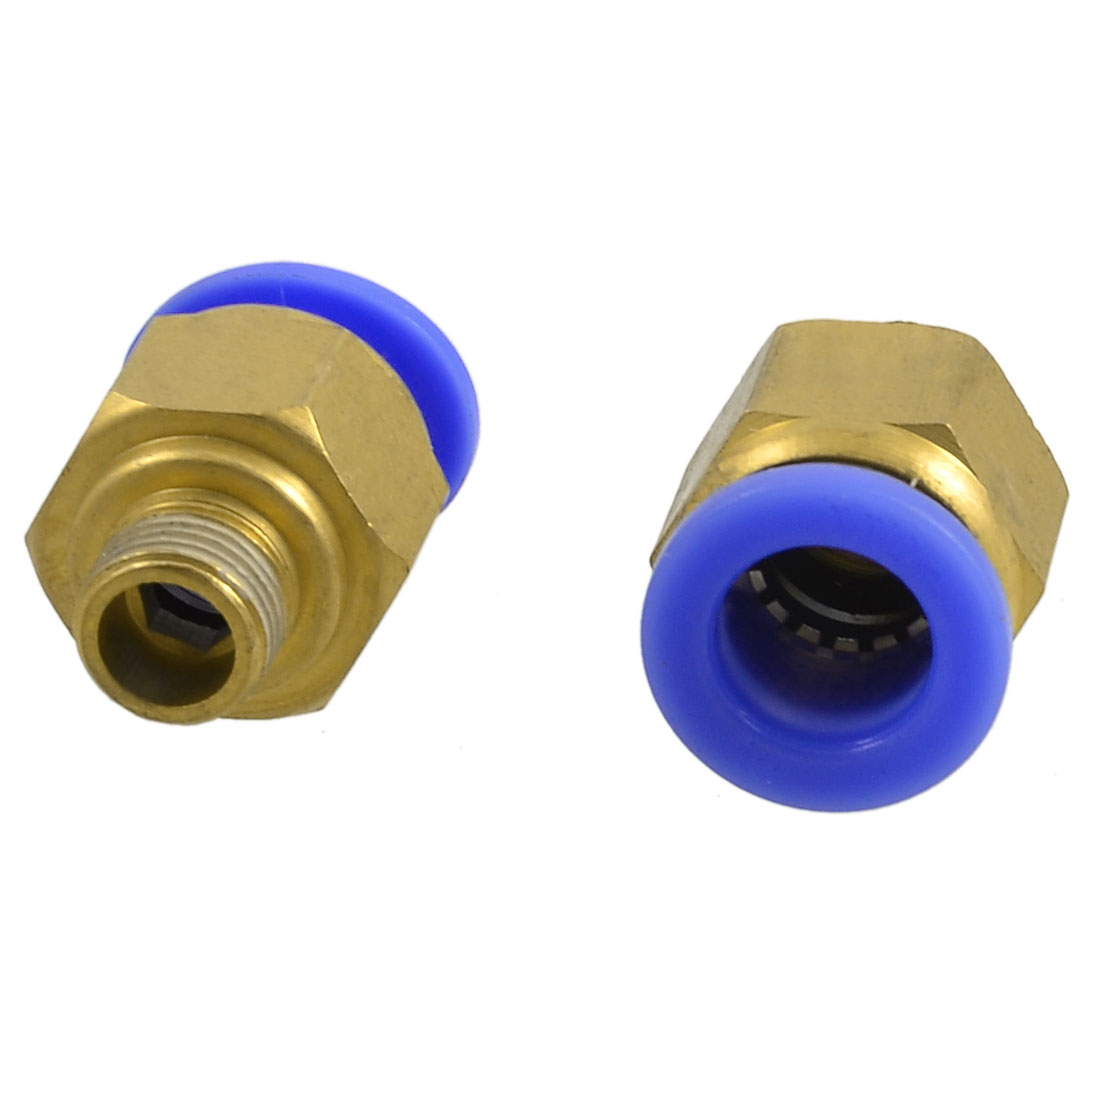 "2 x 1/8"" Thread One Touch Push In Pneumatic Quick Connector for 10mm Tubing"